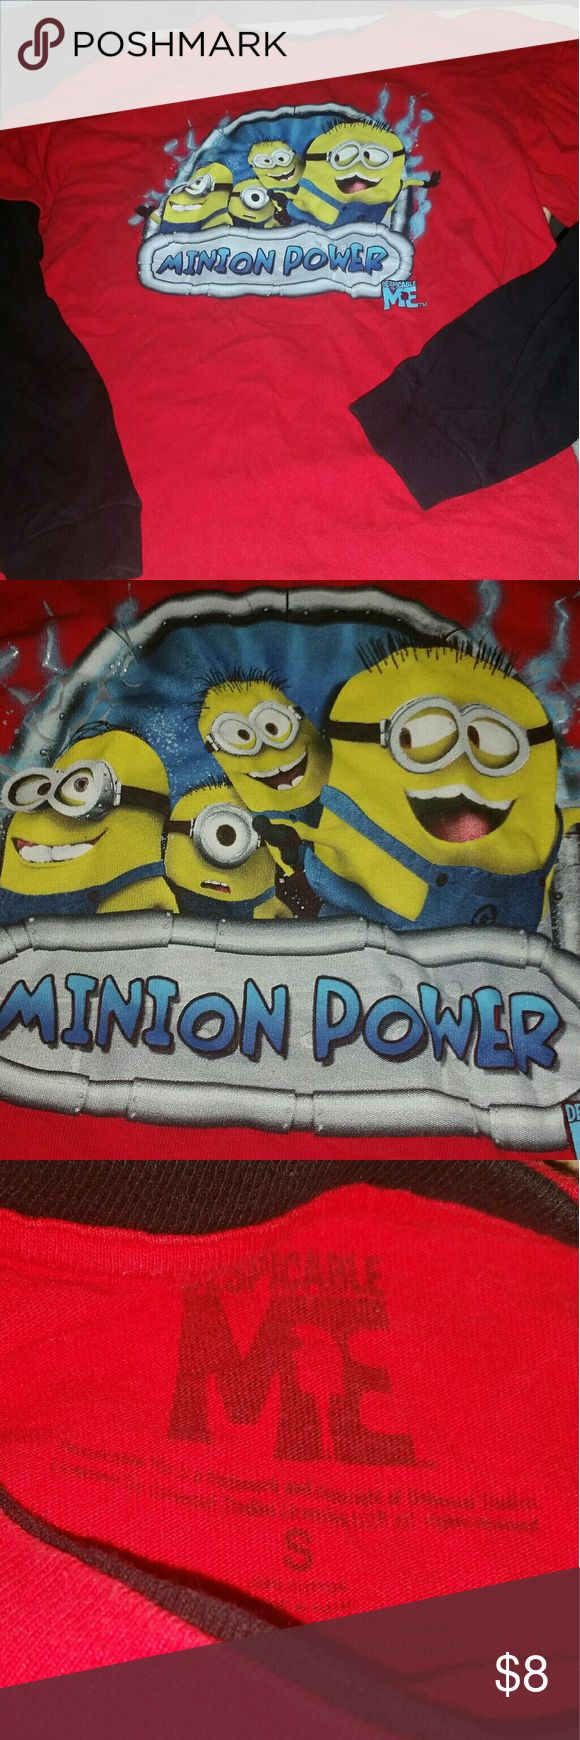 """BOYS """"Minion Power"""" Despicable Me movie Shirt Boys Size Small Long sleeved layered look crew neck shirt featuring the adorably silly Minion characters, Very good pre-owned condition, smoke-free home Shirts & Tops Tees - Long Sleeve"""